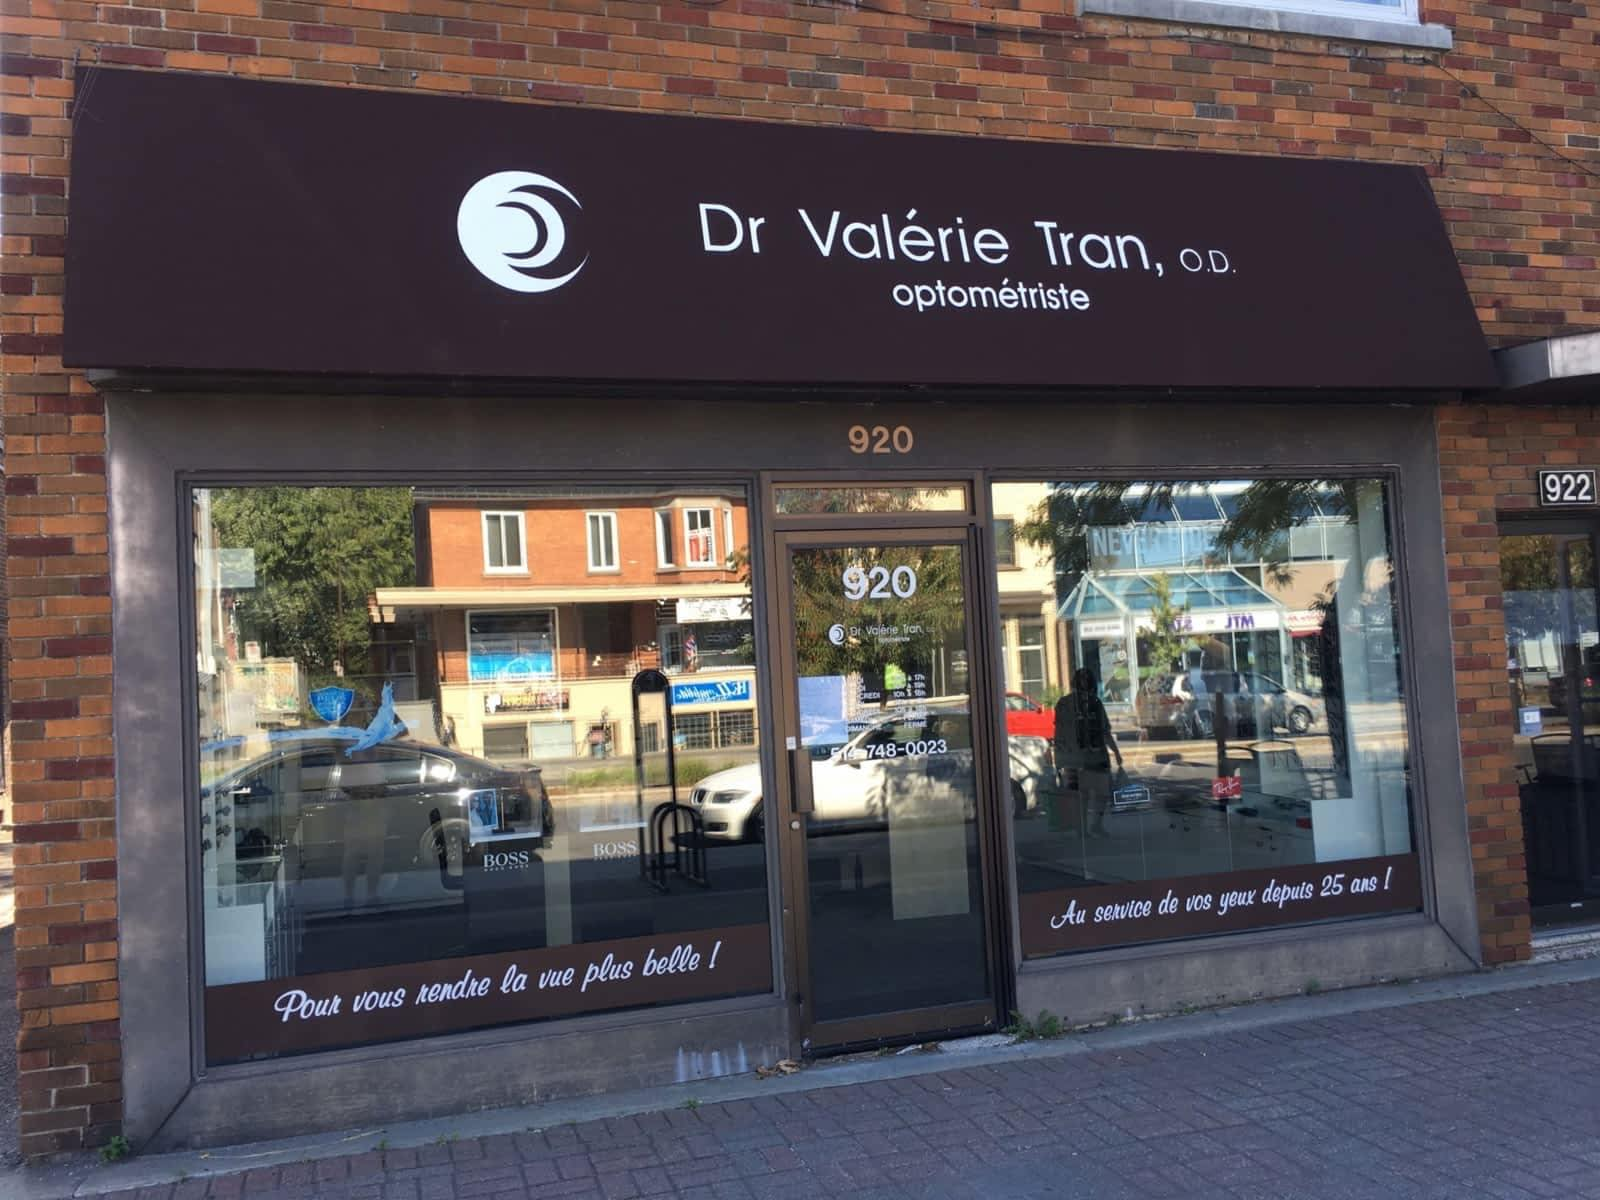 Clinique d'Optometrie Valerie Tran - Optometrist